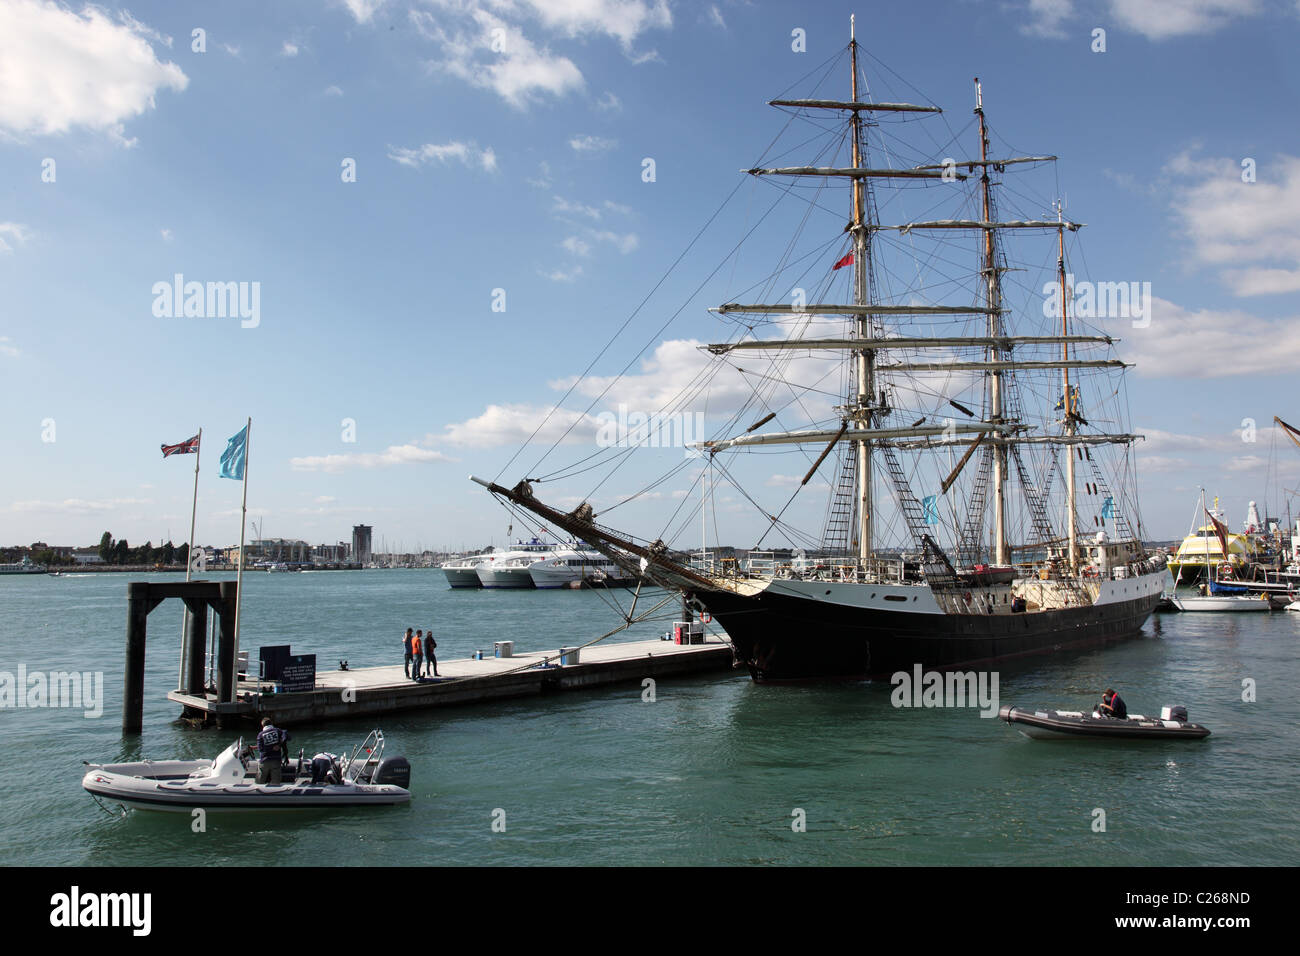 A Tall Ship moored in Gunwharf Quays, Portsmouth, Hampshire, England - Stock Image